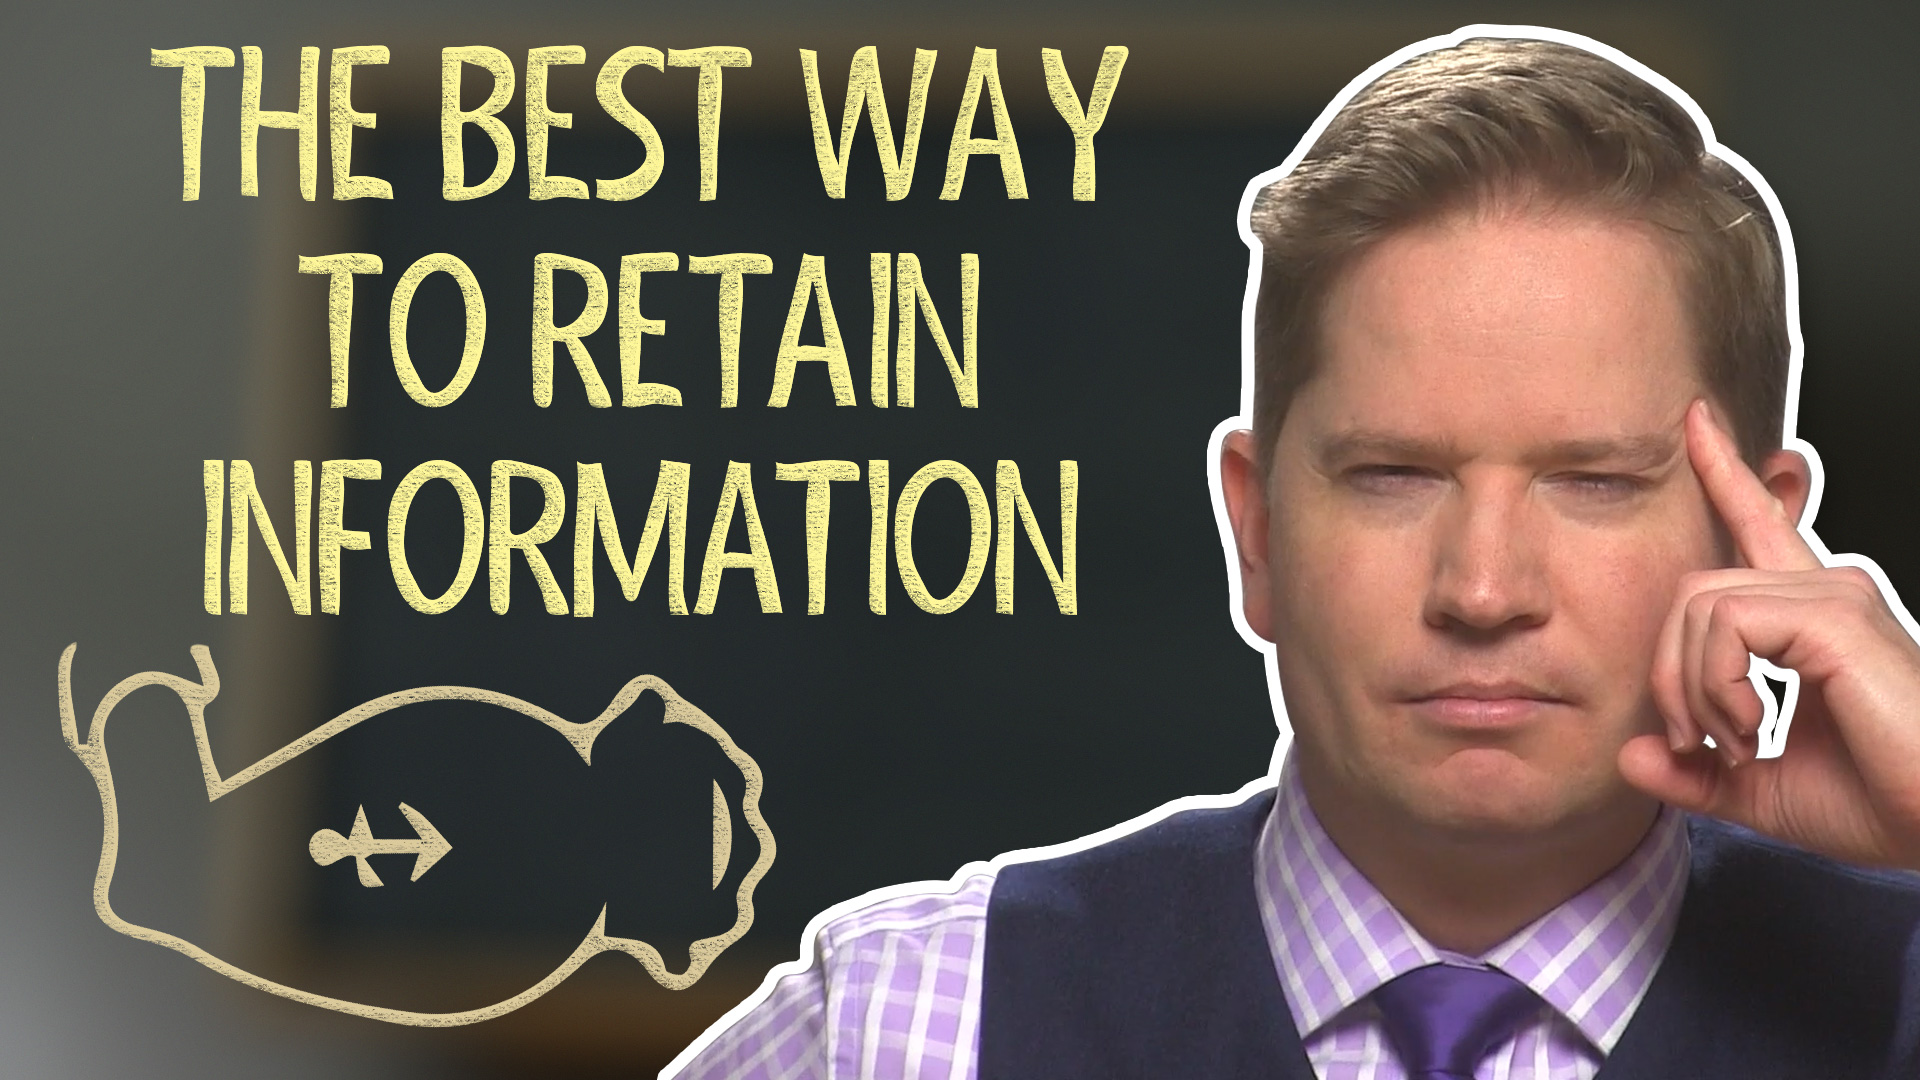 The Best Way to Retain Information